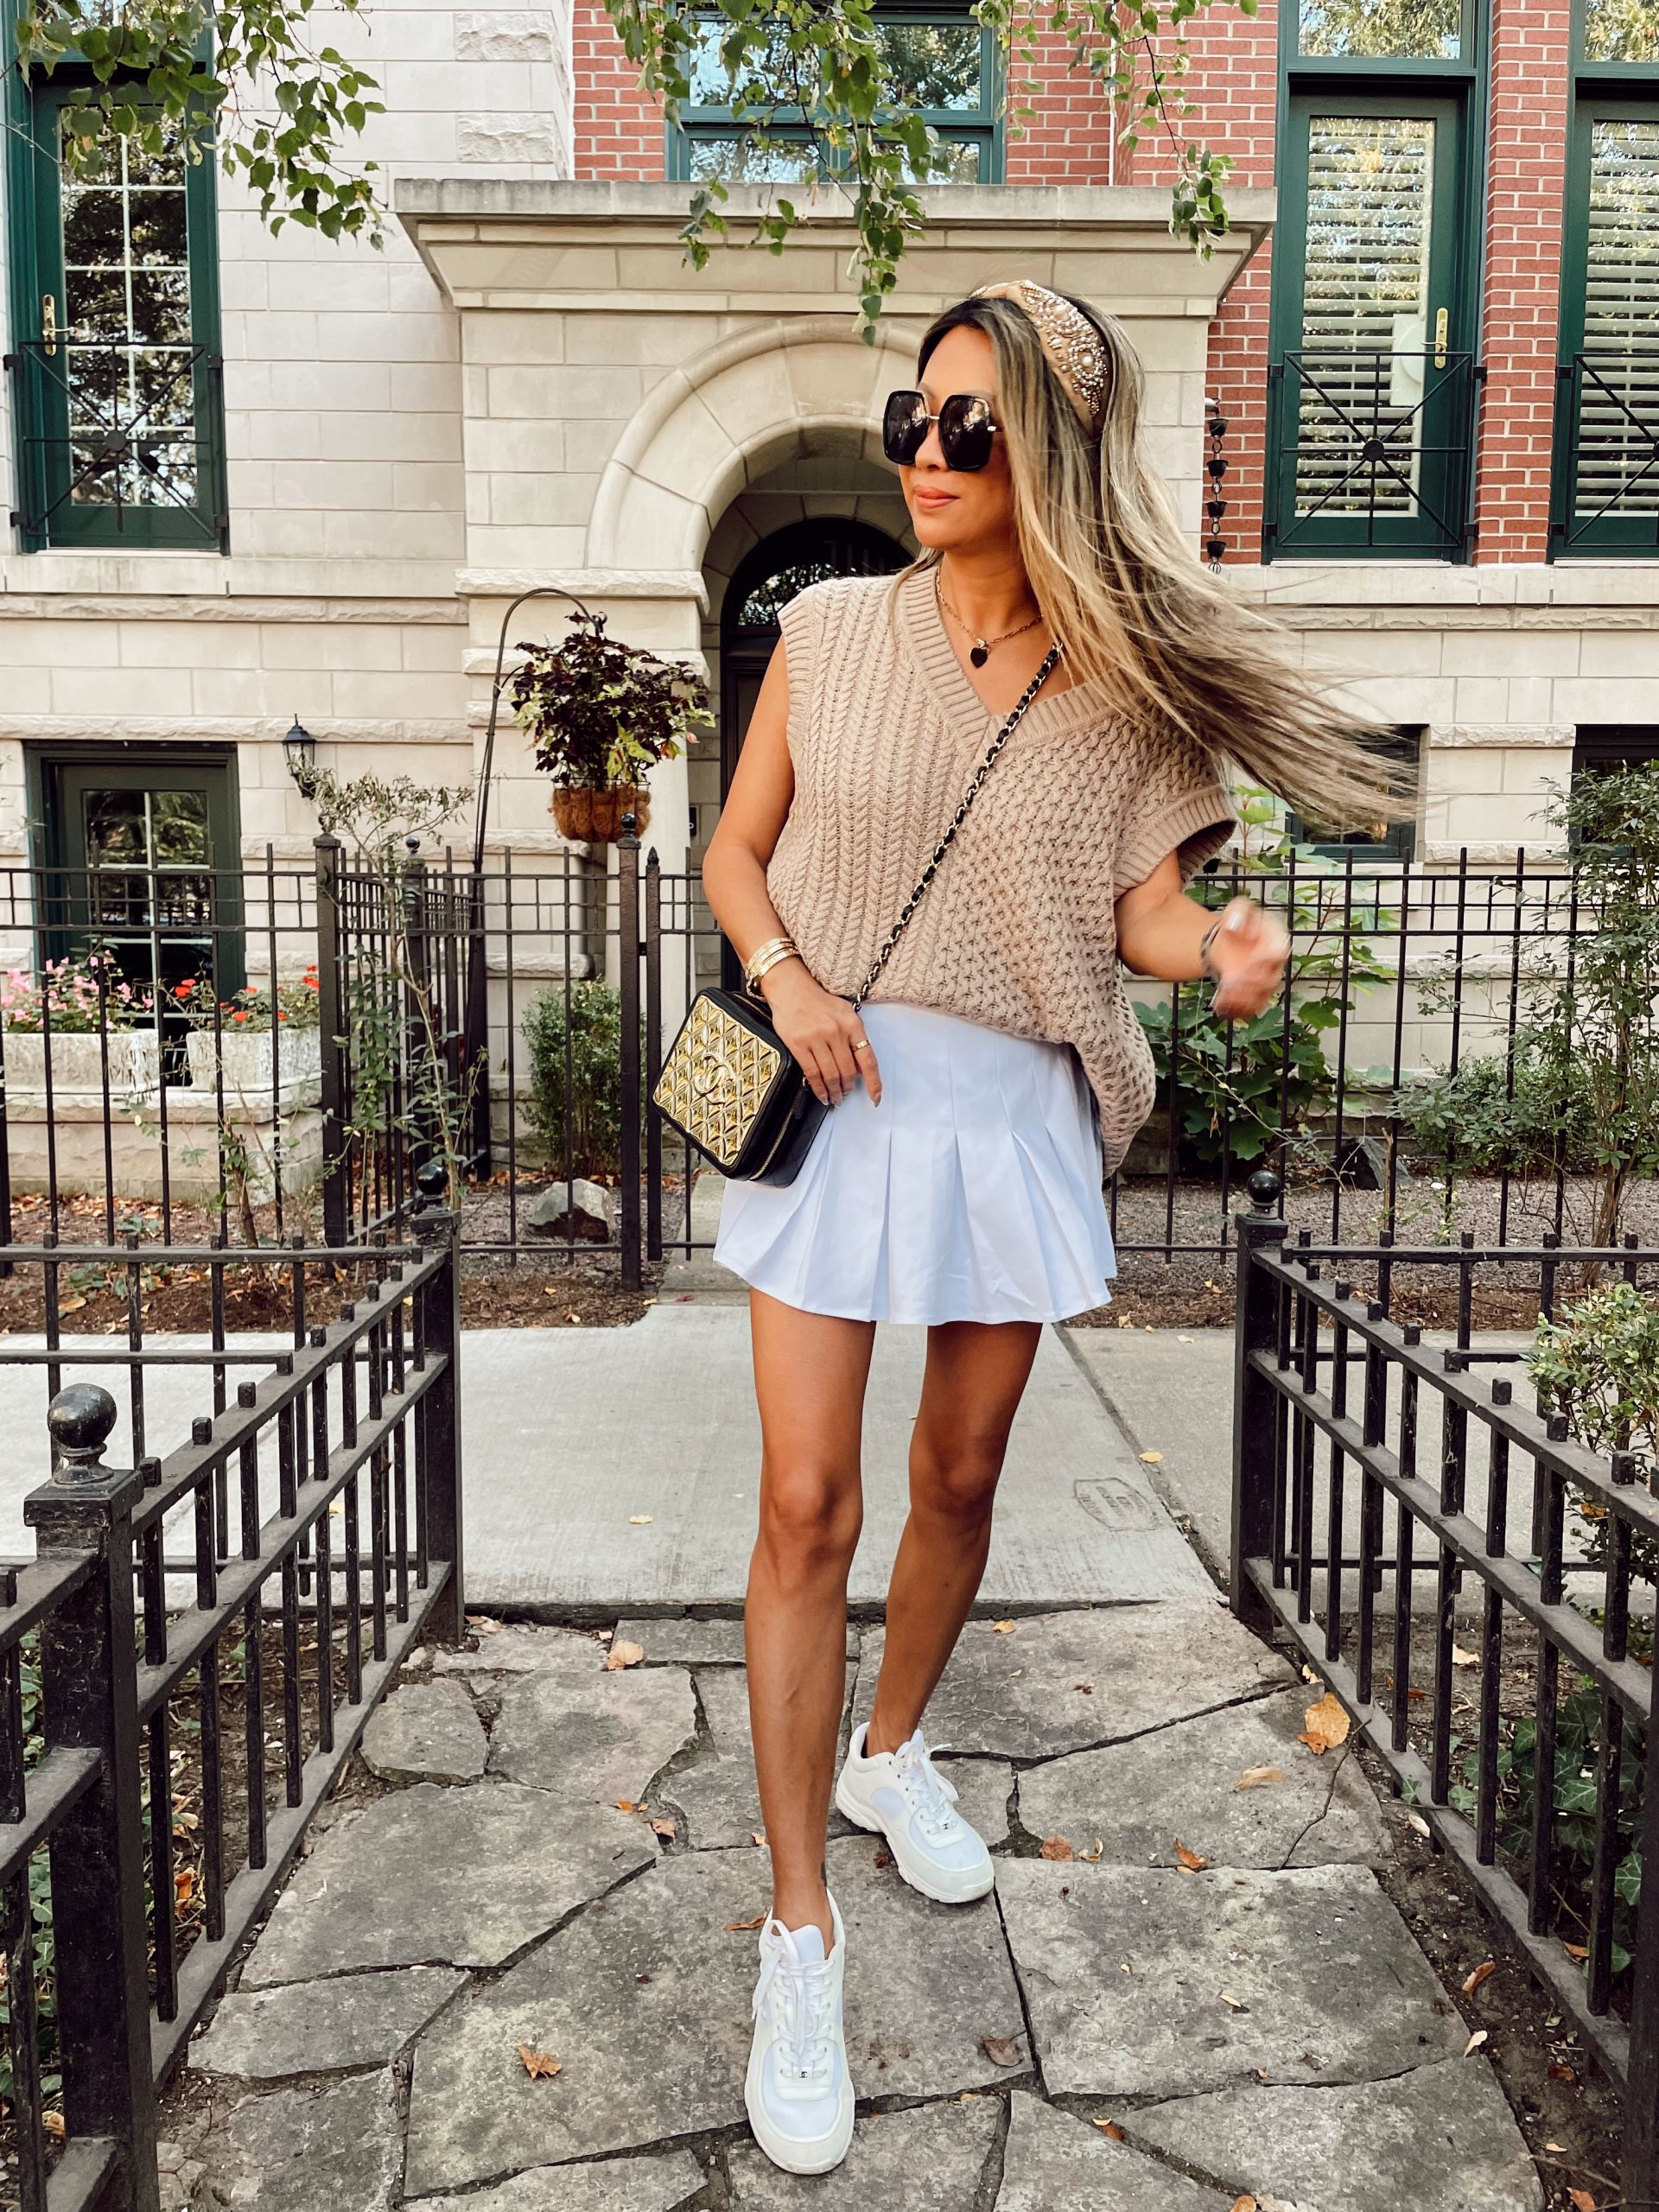 Sweater vest and skort outfit, how to style a sweater vest, sweater vest inspiration, sweater vest outfit, sweater vest ideas, sweater vest outfit ideas, street style sweater vest outfit, neutral sweater vest, outfitideas, fall outfit ideas, fall 2021 outfits, fall 2021 trends, fashion blogger, style blogger, fashion photography, outfitphoto ideas, outfit photography ideas, Red Soles and Red Wine, Jen Worman